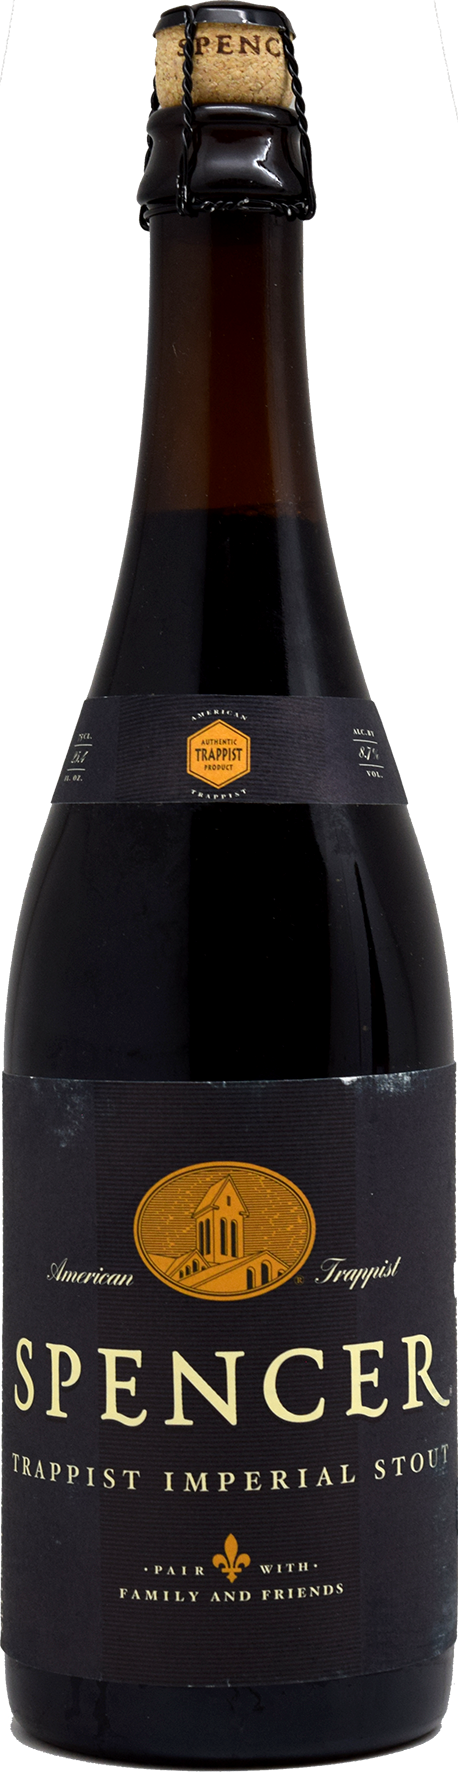 спенсер траппистский имперский стаут / spencer trappist imperial stout (0,75 л.)